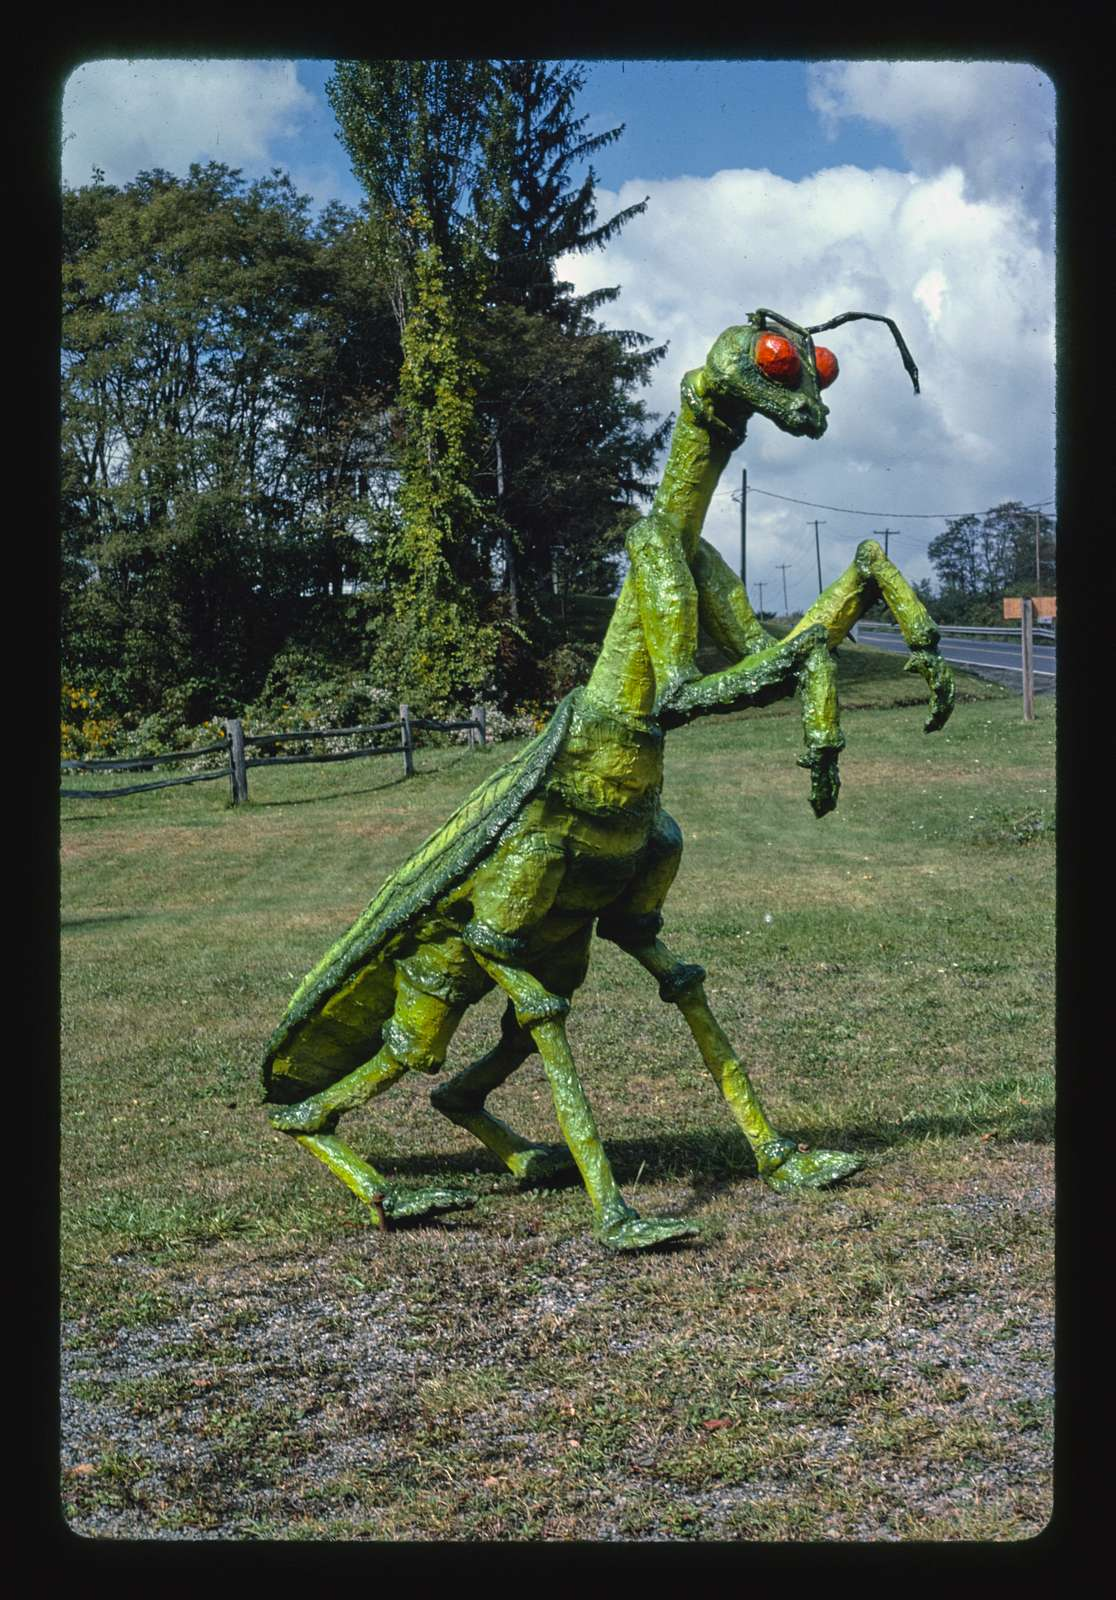 Praying Mantis statue at Second Time Around, Route 30, Boswell, Pennsylvania